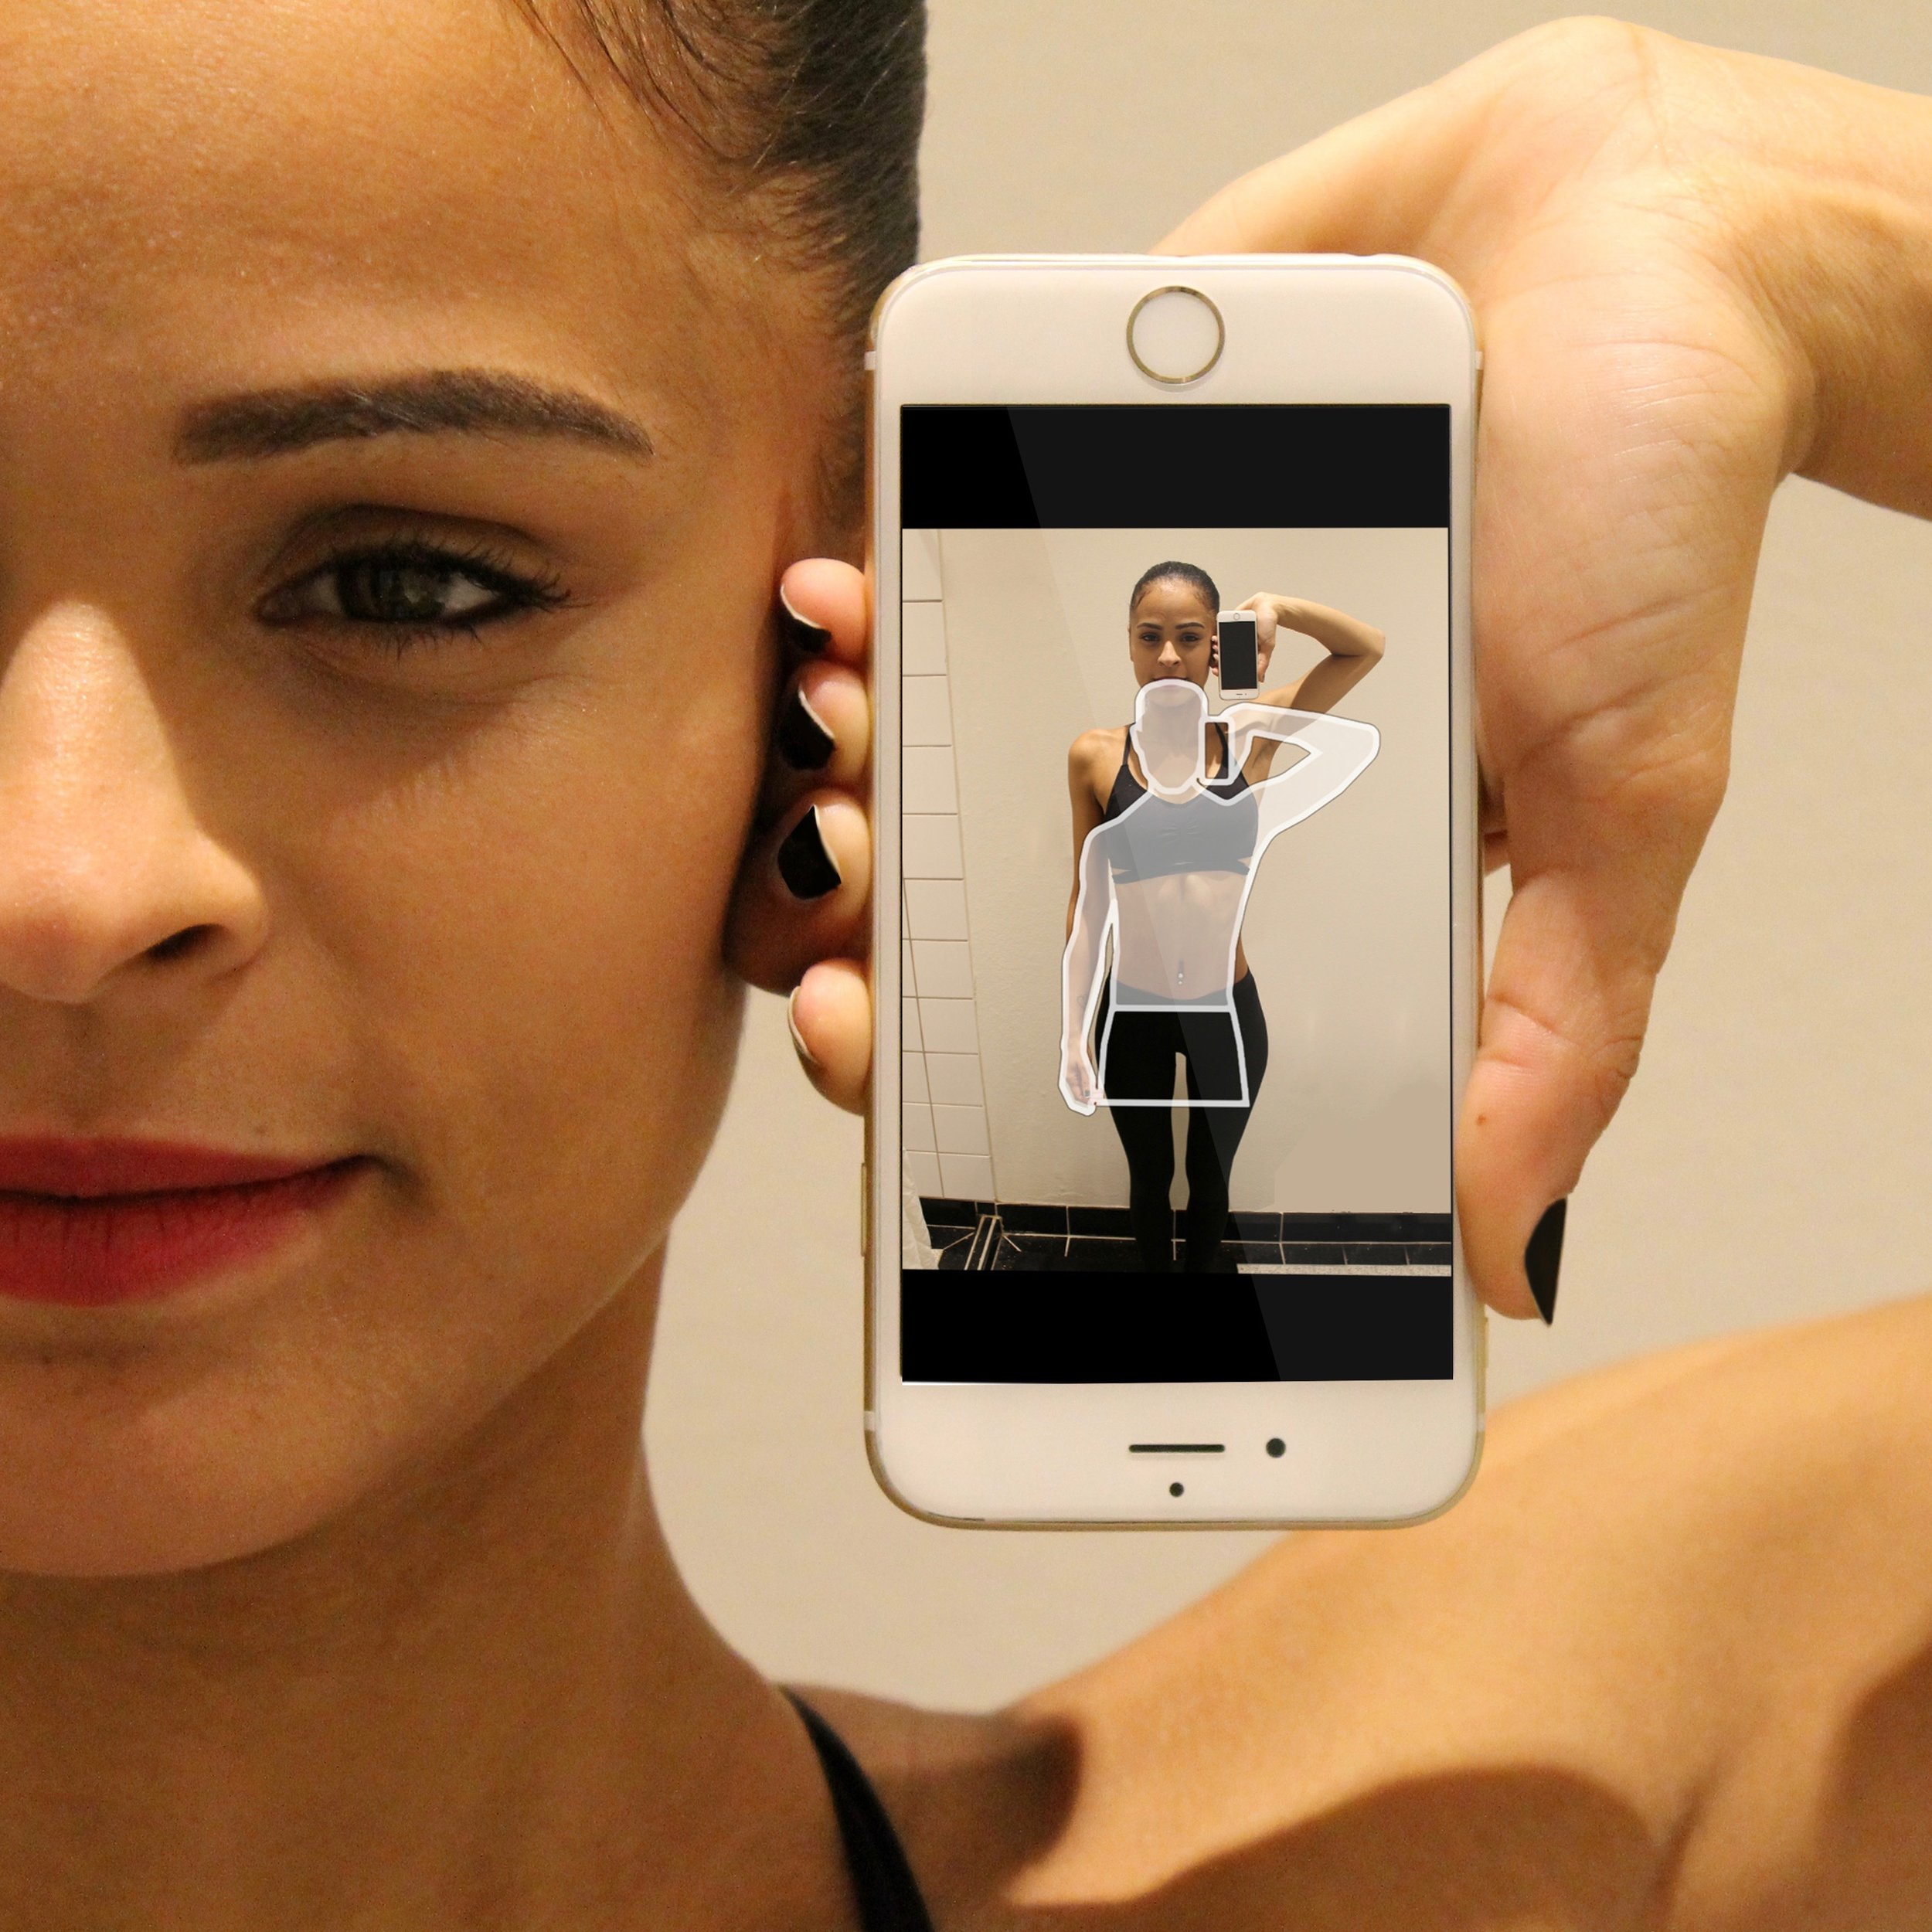 Backed by science - The technology behind BodyBarista is a US patented photogrammetric calibration technology. Thanks to a pixel precise calibration method, the distance, angle, mirror tilt, as well as the intrinsic camera values and the distortion of the normal iPhone lens, the app can give the accurate measurements of the body detected in the picture. According to science, seeing the body's progress is the #1 reason why people keep to their fitness routine. BodyBarista will keep you motivated to continue by showing you the progress you're making in inches and cm.